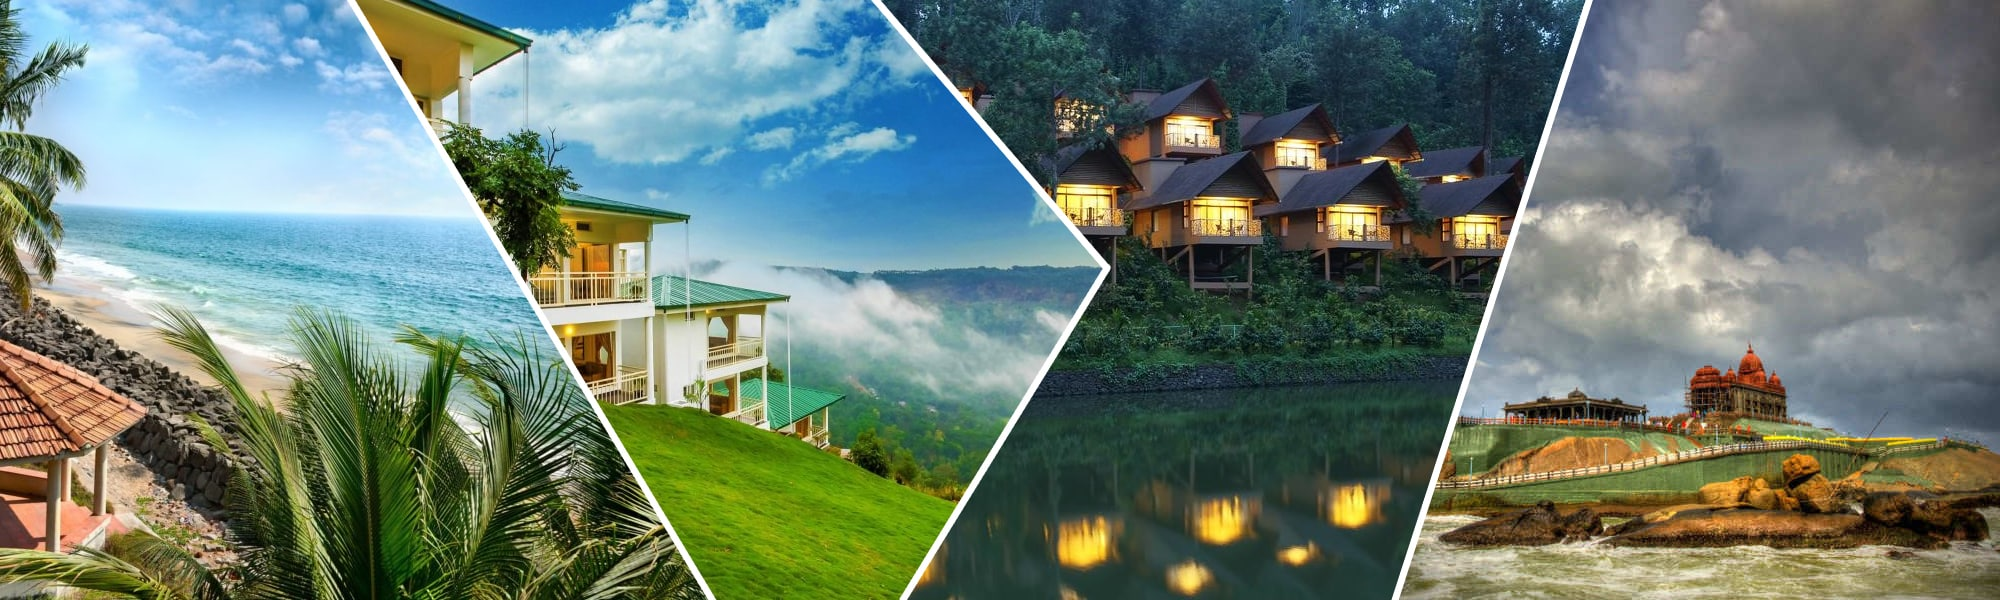 Munnar, Thekkady, Alappuzha, Thiruvananthapuram, Kovalam and Kanyakumari Holiday Package Tour